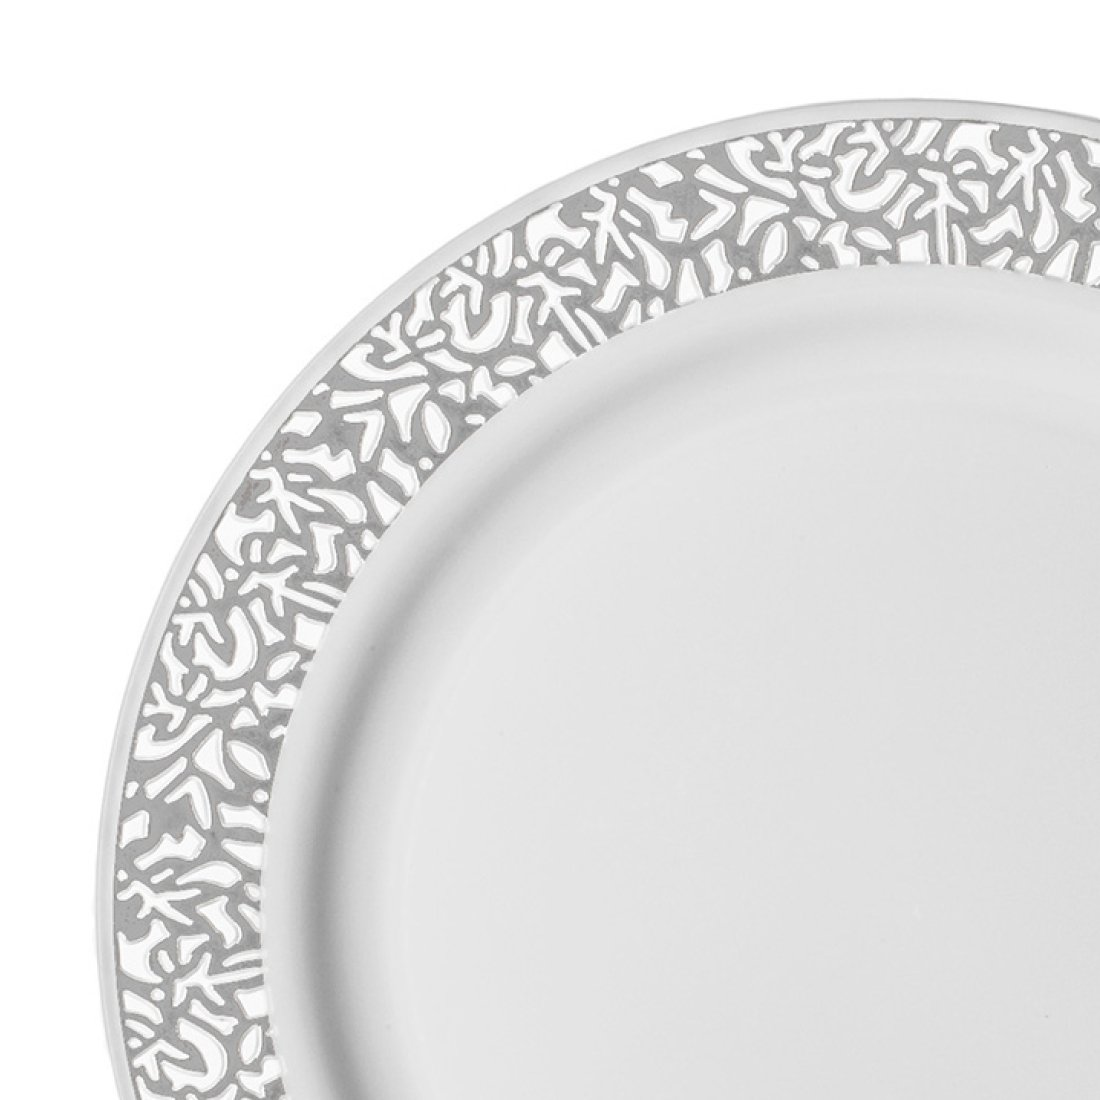 PARTY DISPOSABLE 36 PC DINNERWARE SETDINNER //SALAD PLATESMarble Collection